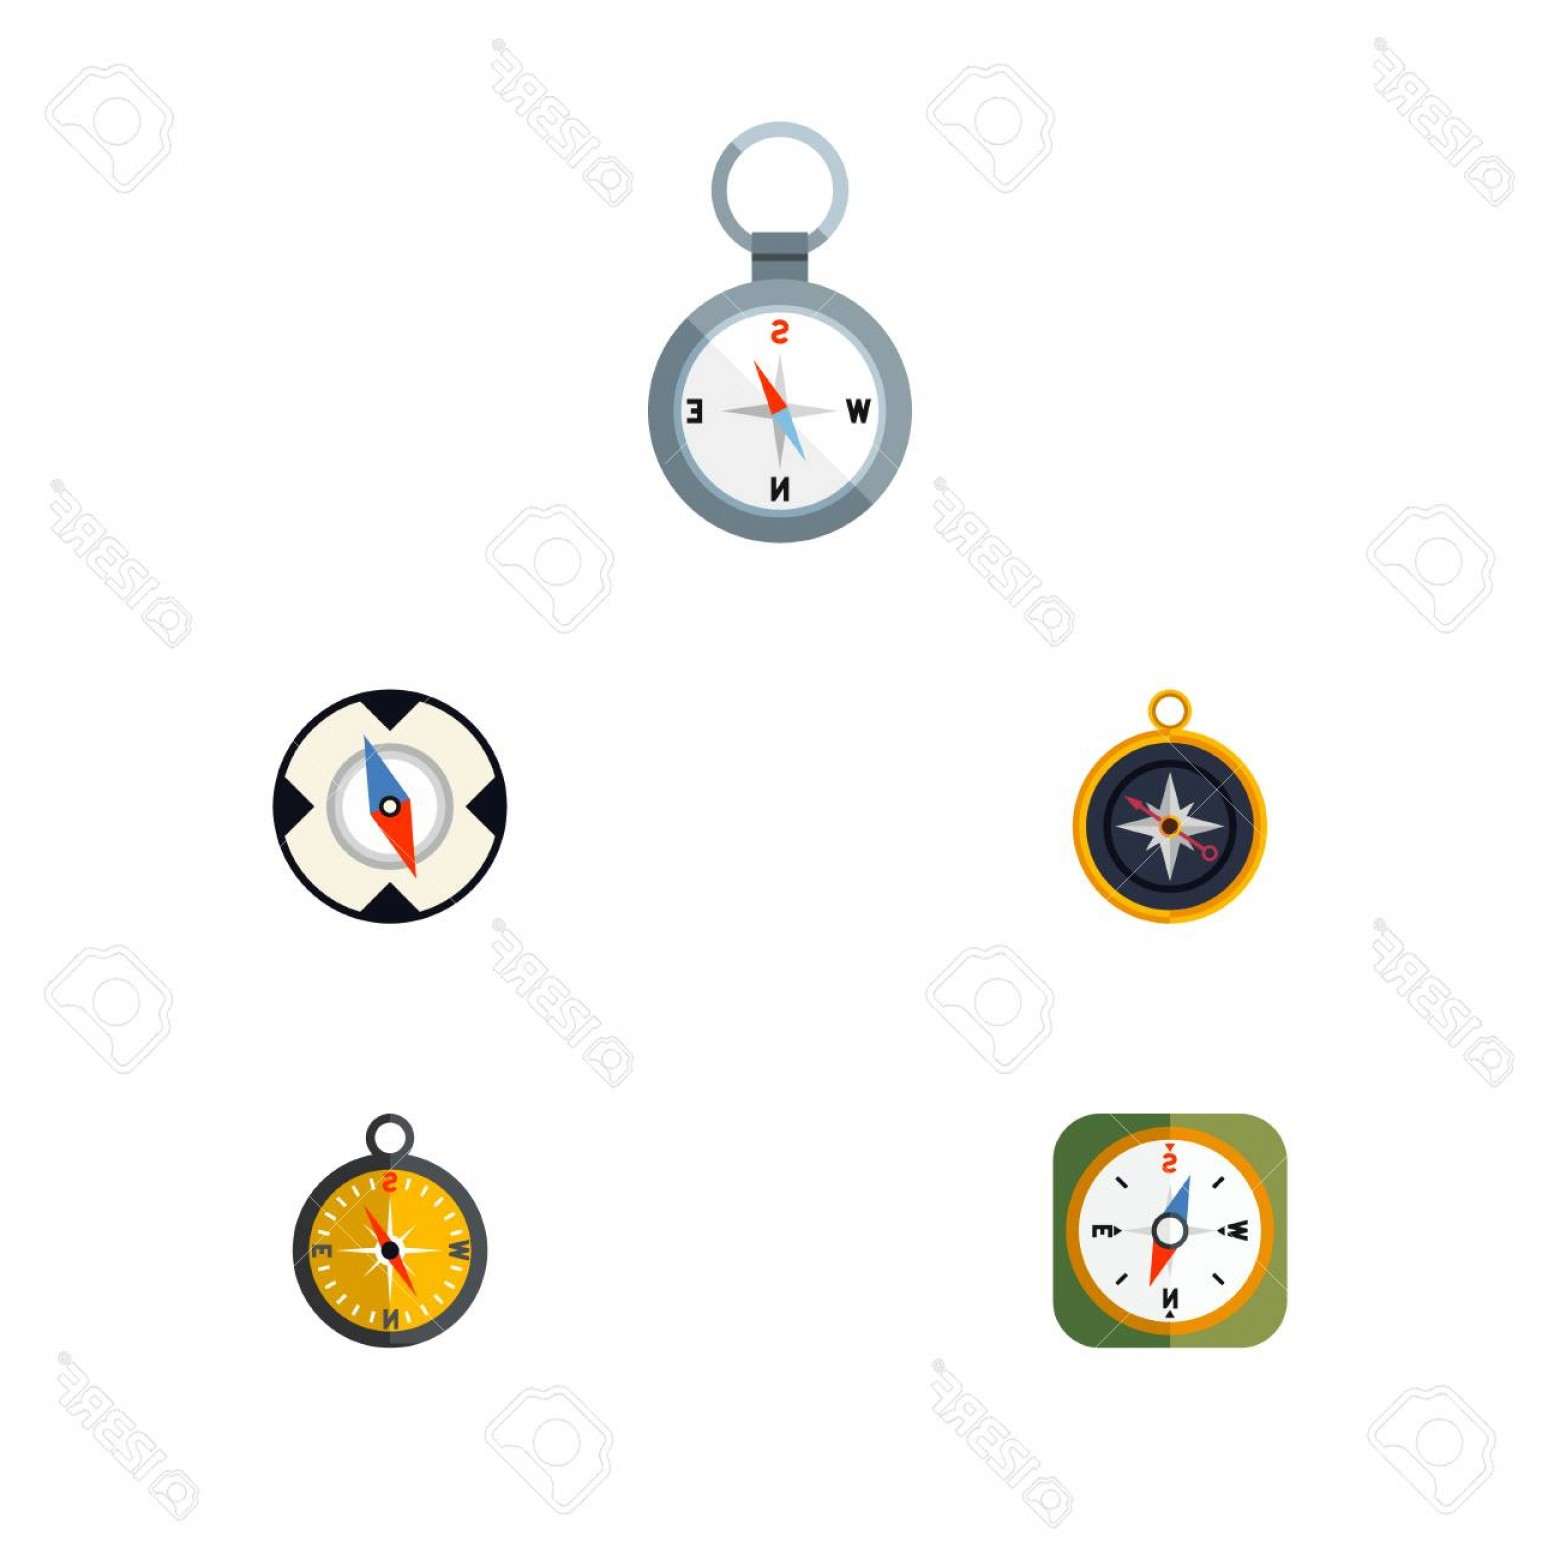 Measurement And Direction Vector: Photostock Vector Flat Icon Compass Set Of Direction Divider Magnet Navigator And Other Vector Objects Also Includes O